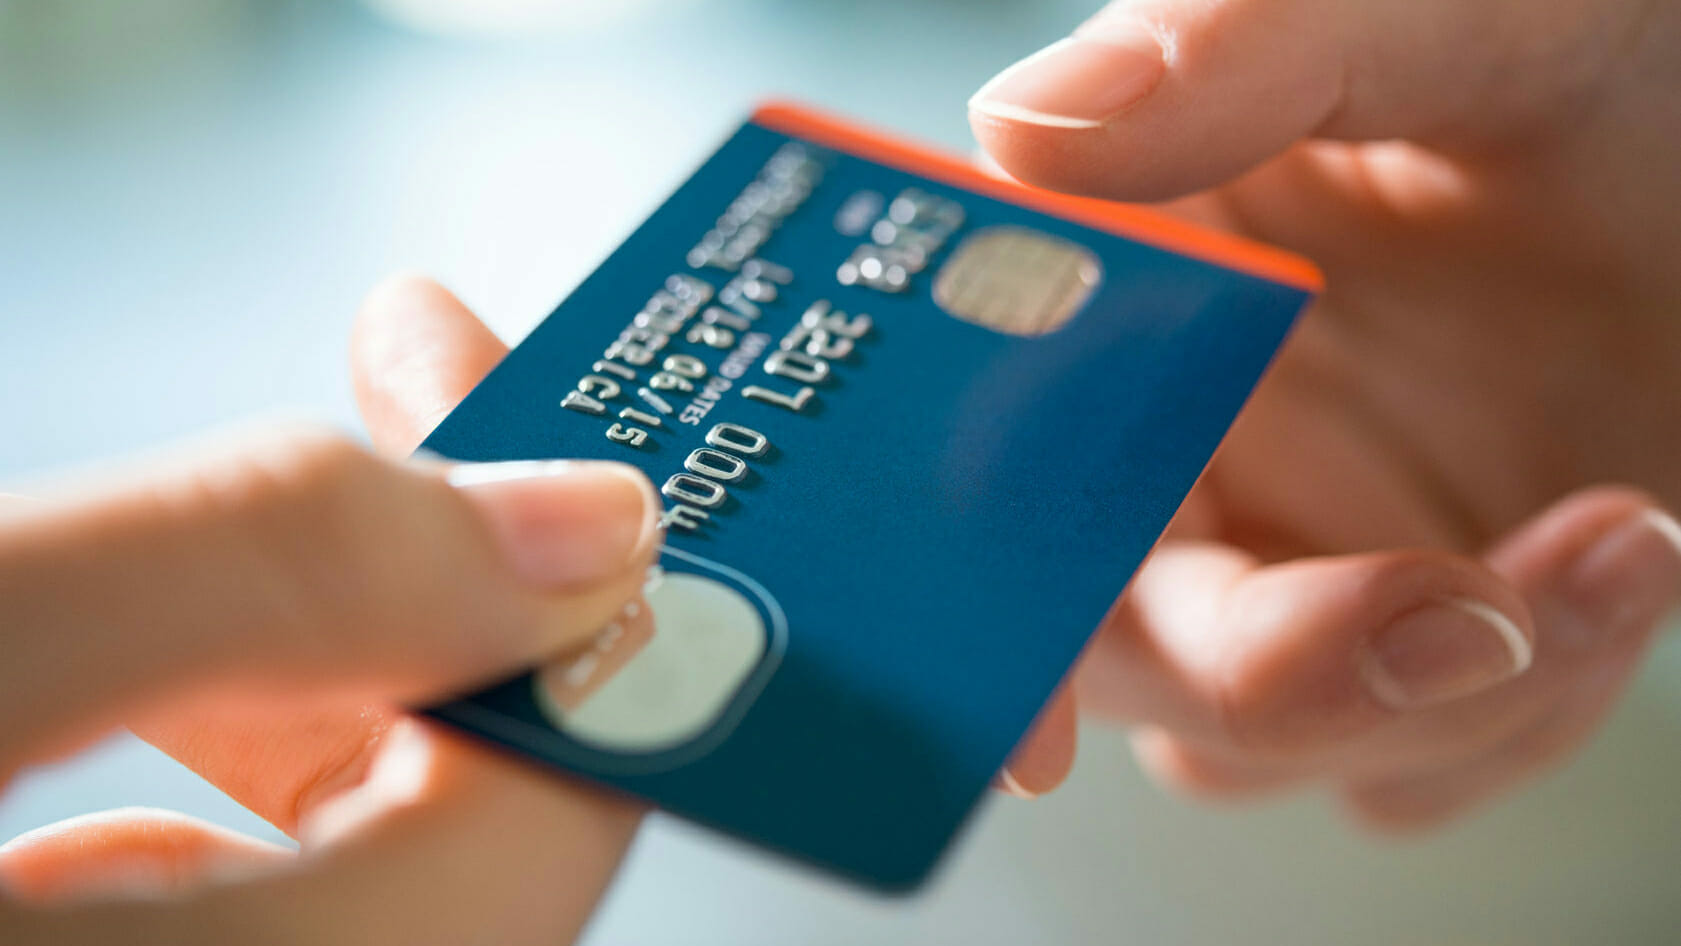 Best 0% APR Credit Cards 2018 - Pay No Interest On Purchases